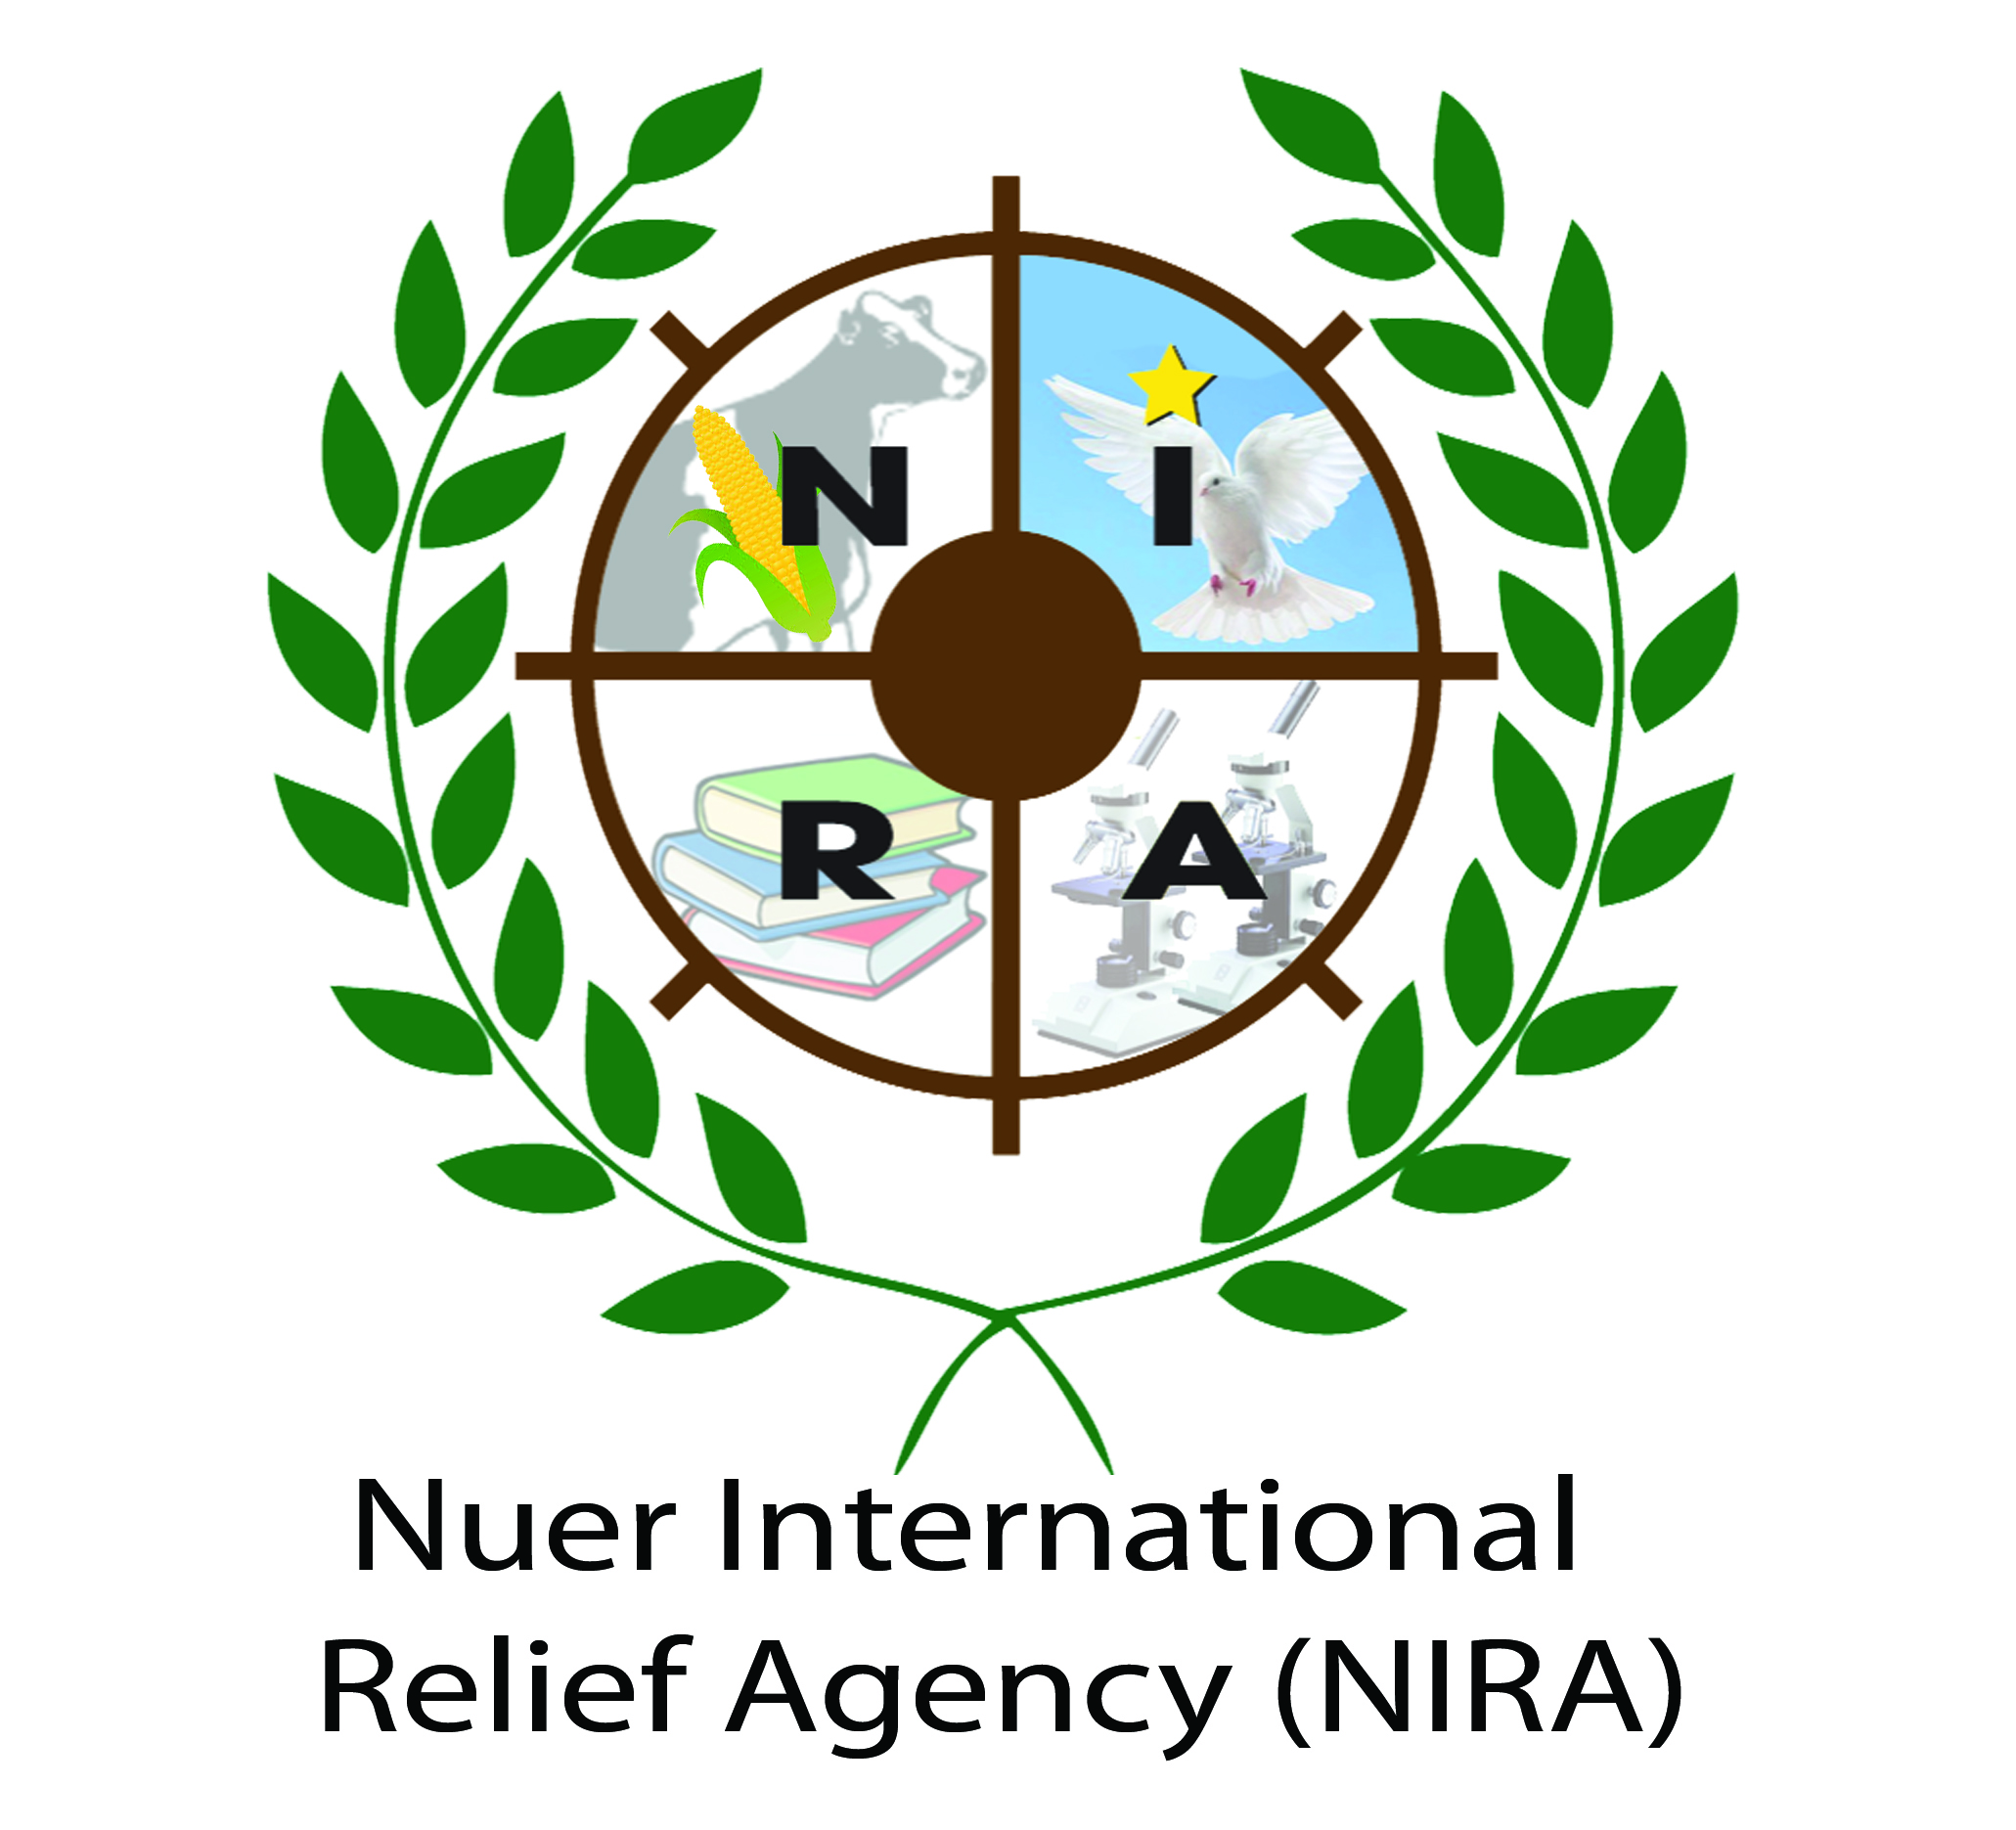 Nuer International Relief Agency.